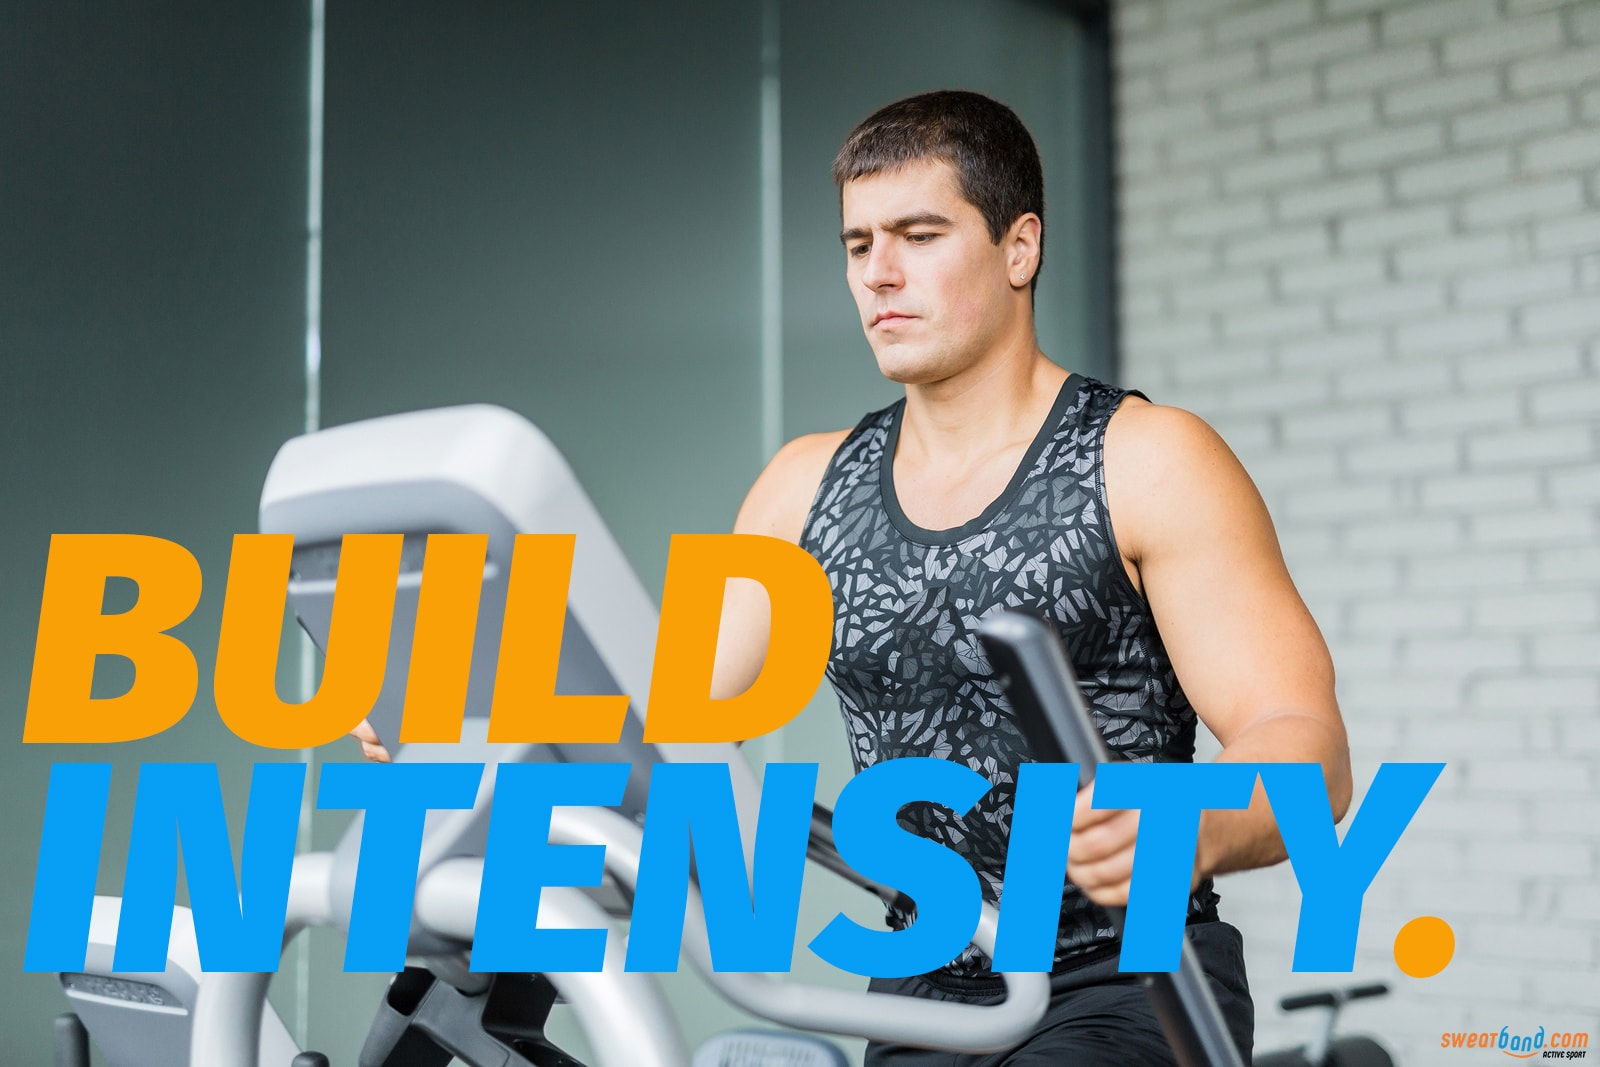 Follow our guide to build up the intensity of your elliptical training sessions